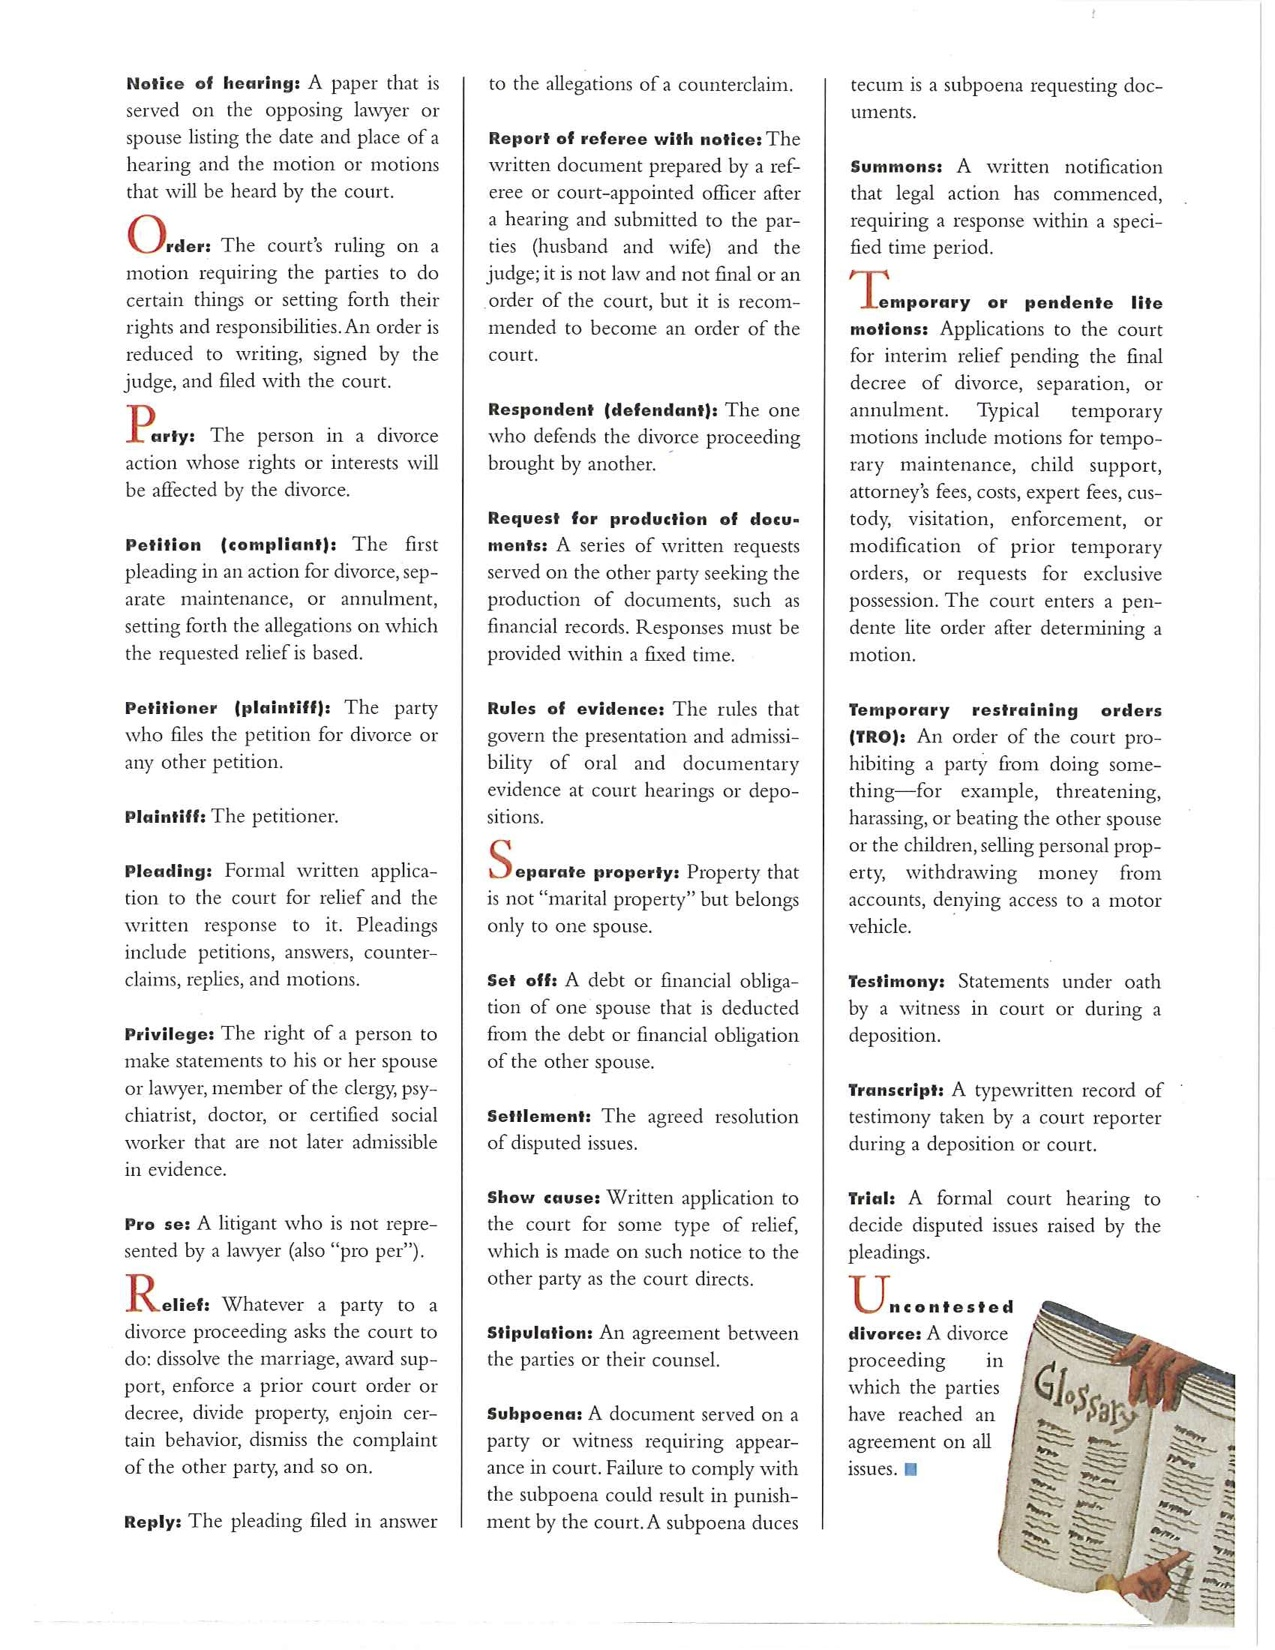 Glossary Terms Definitions: Legal Divorce Terms You Need To Know. A Handy Guide